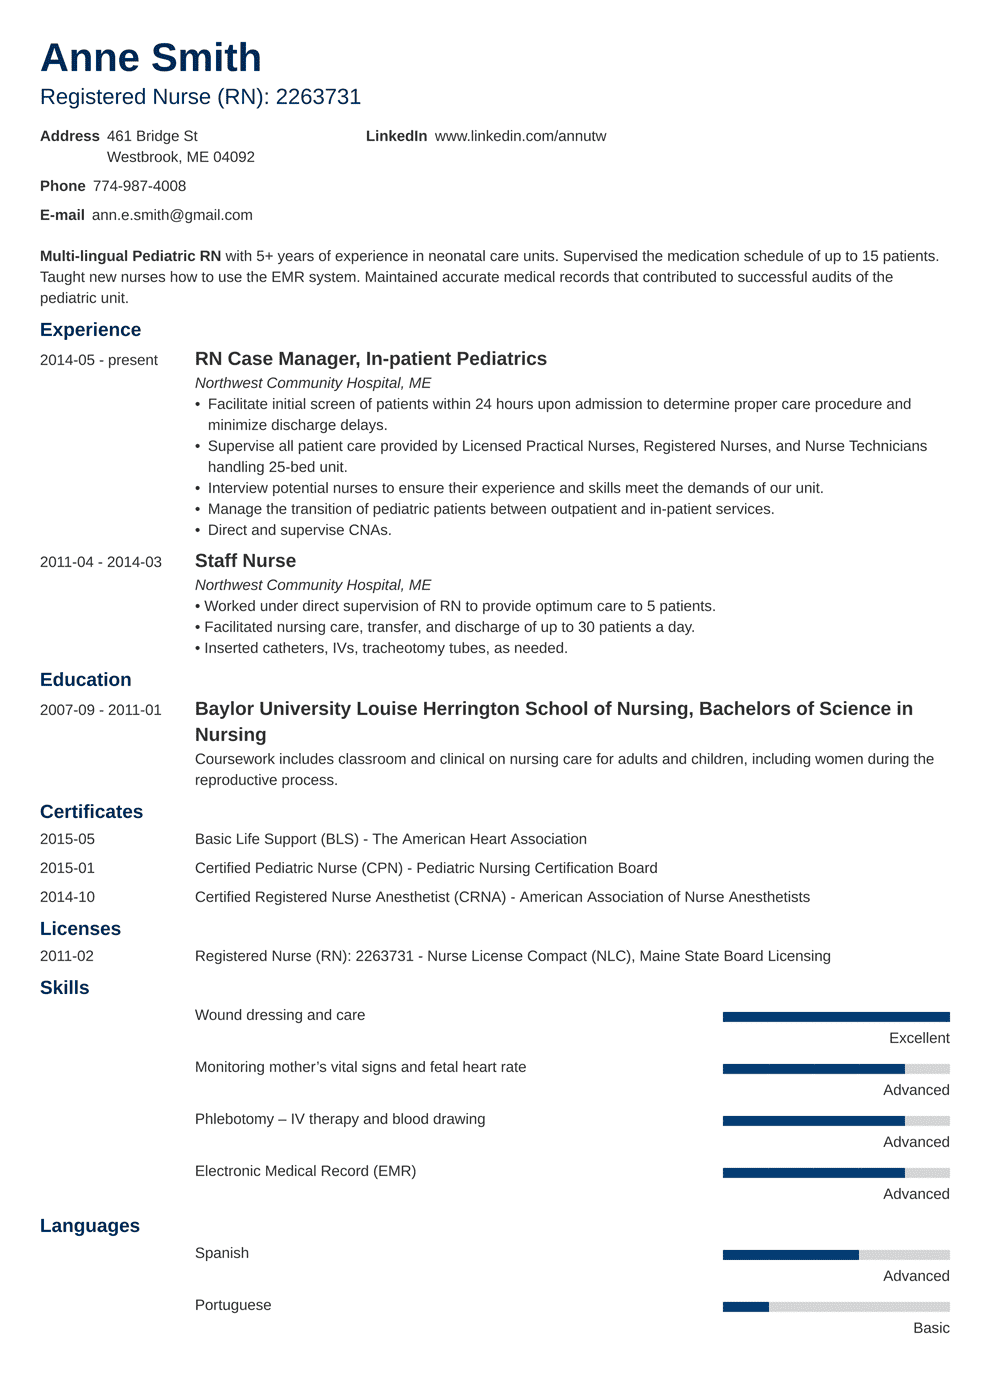 nursing resume template minimo in 2020 Nursing resume